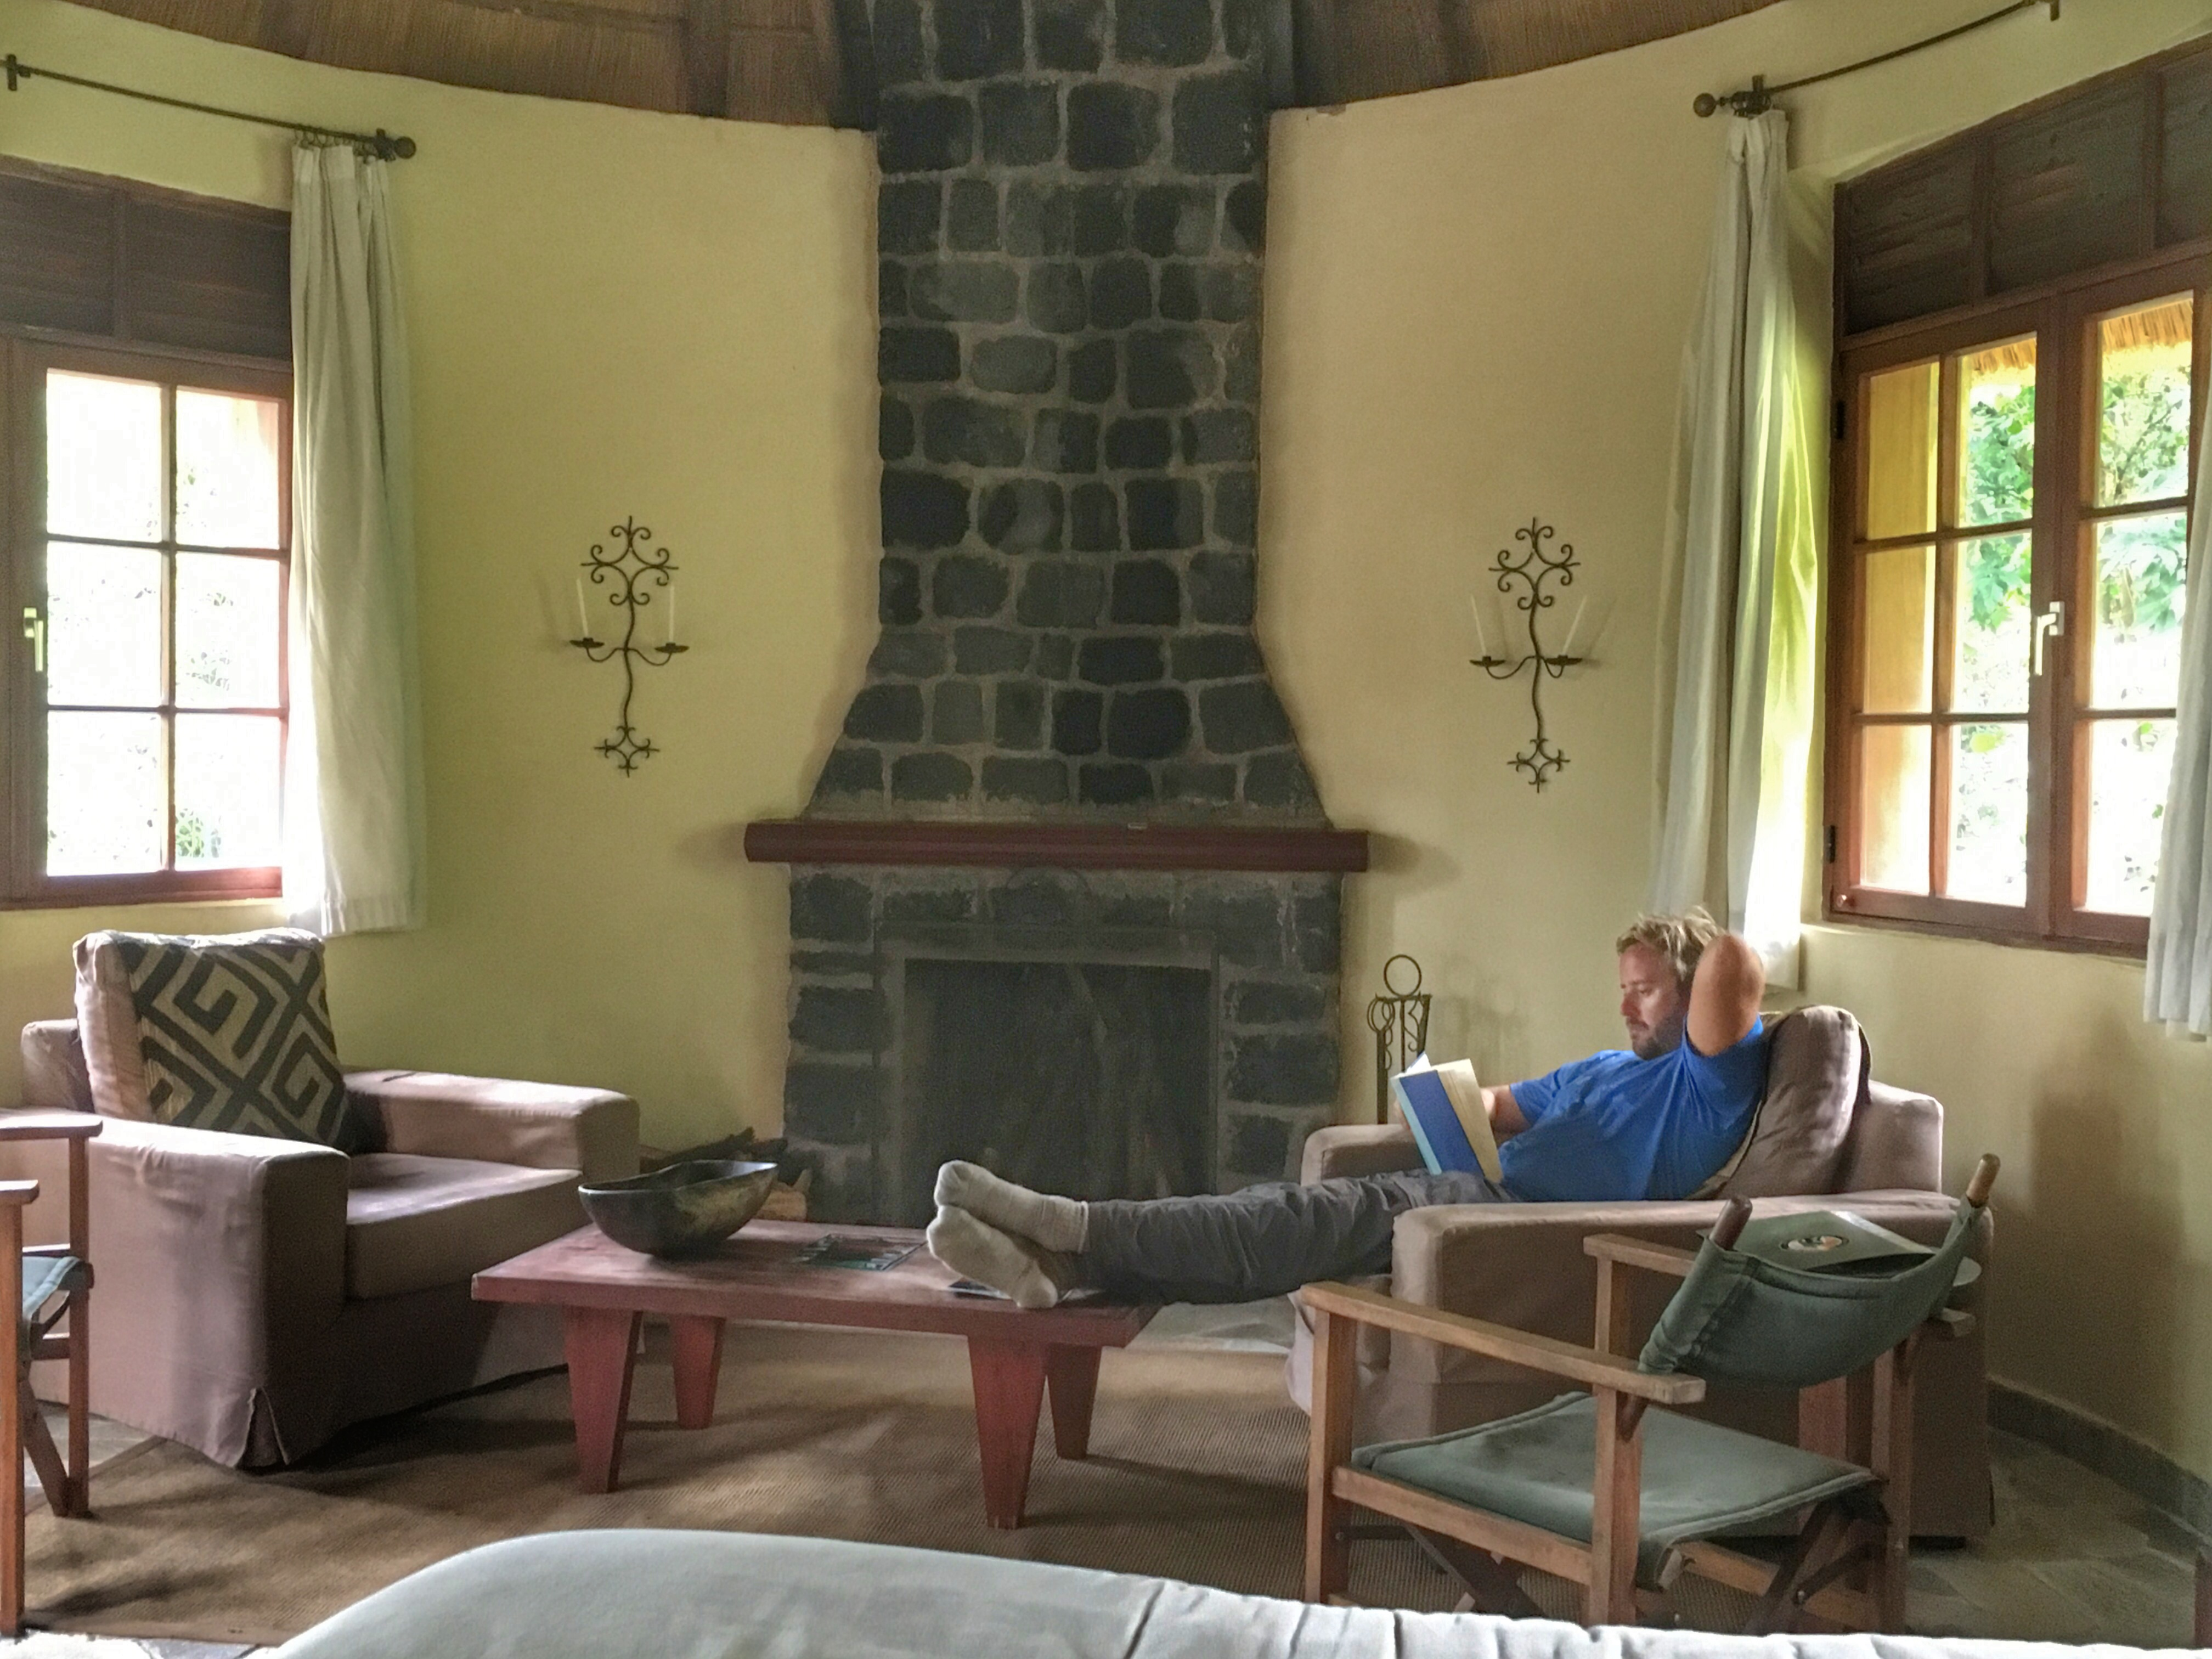 HOTEL INSIDER: A Stay at Mikeno Lodge